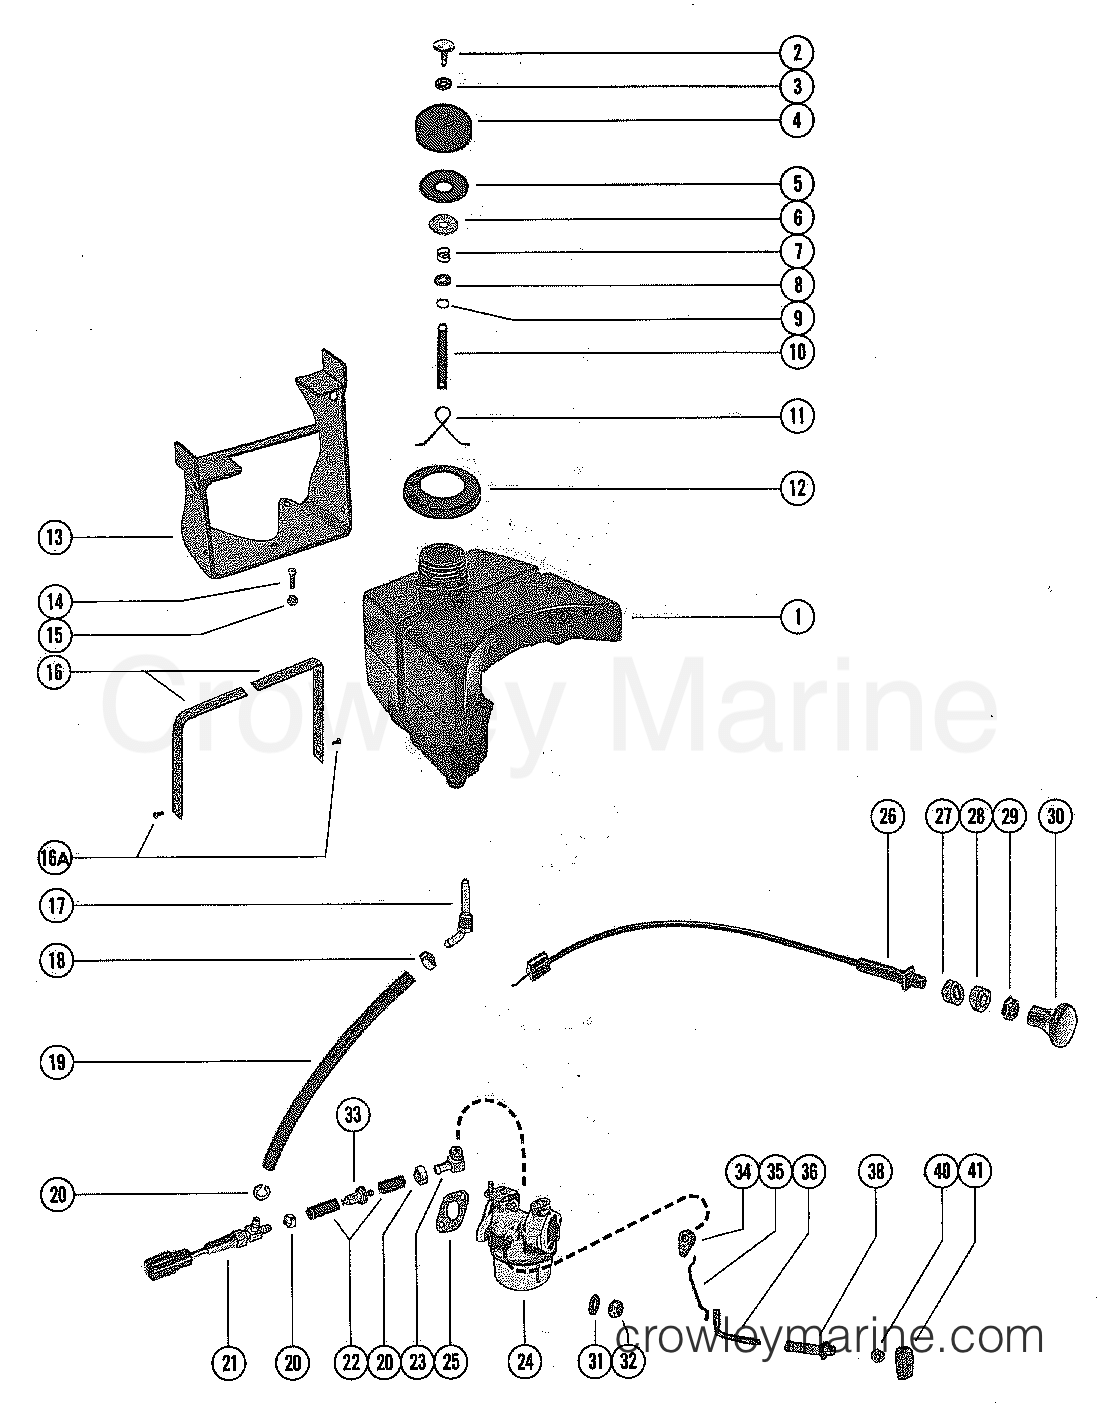 Fuel Tank Fuel Lines And Carburetor